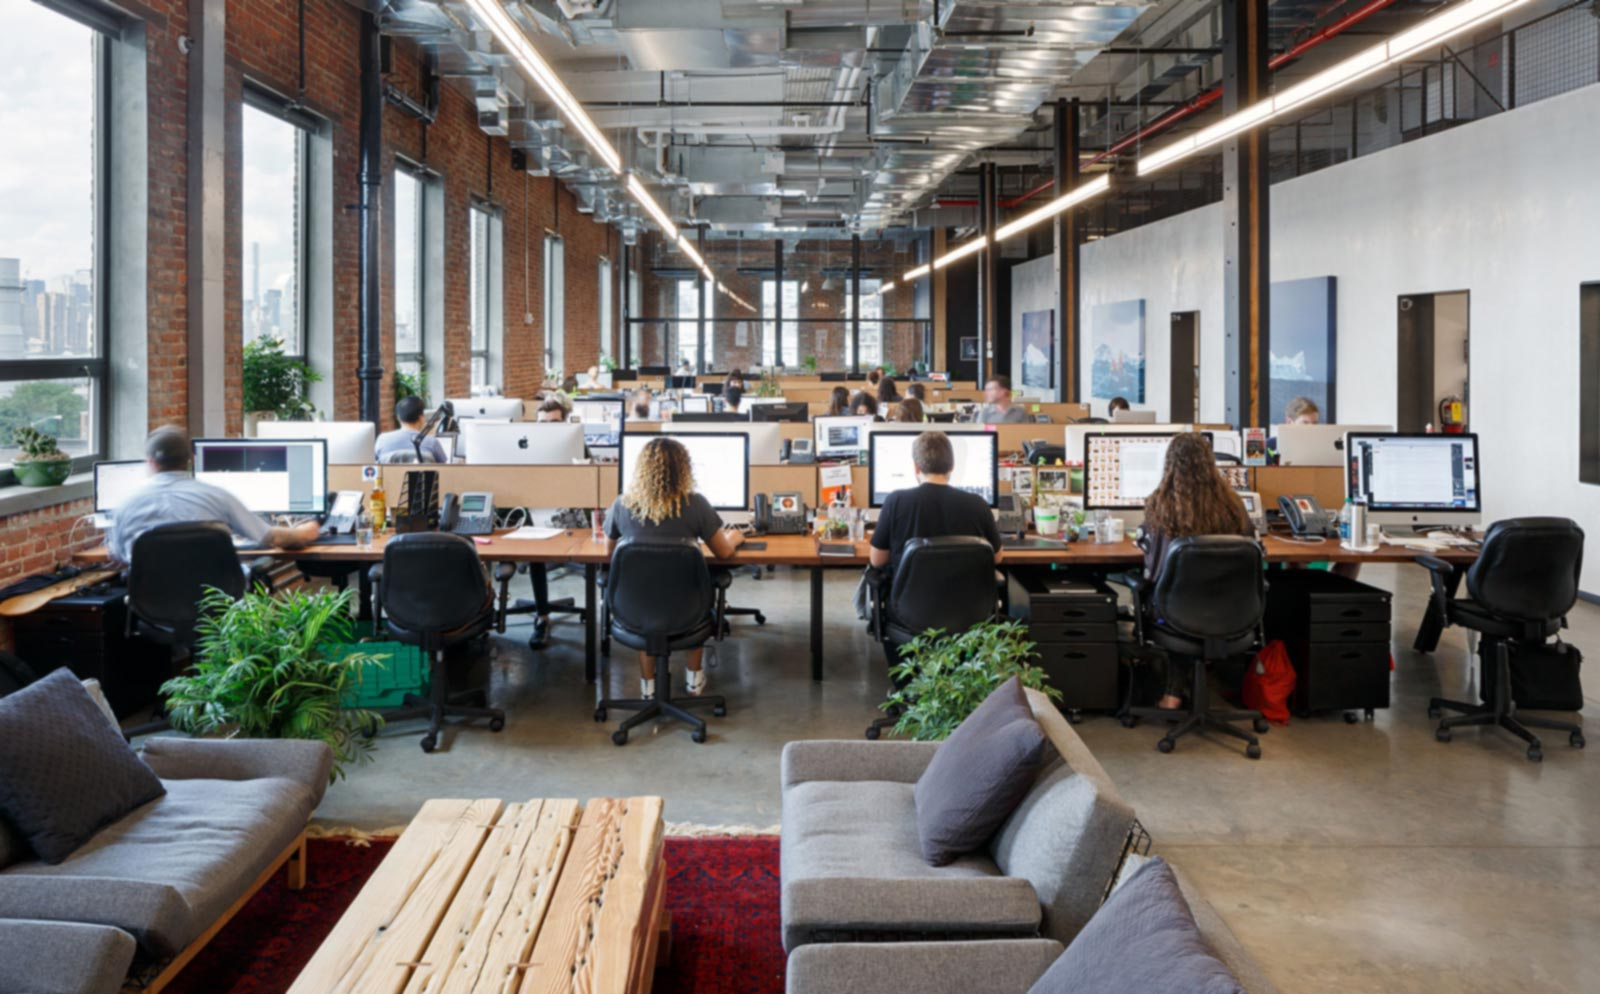 Shared office space, employees working during business hours